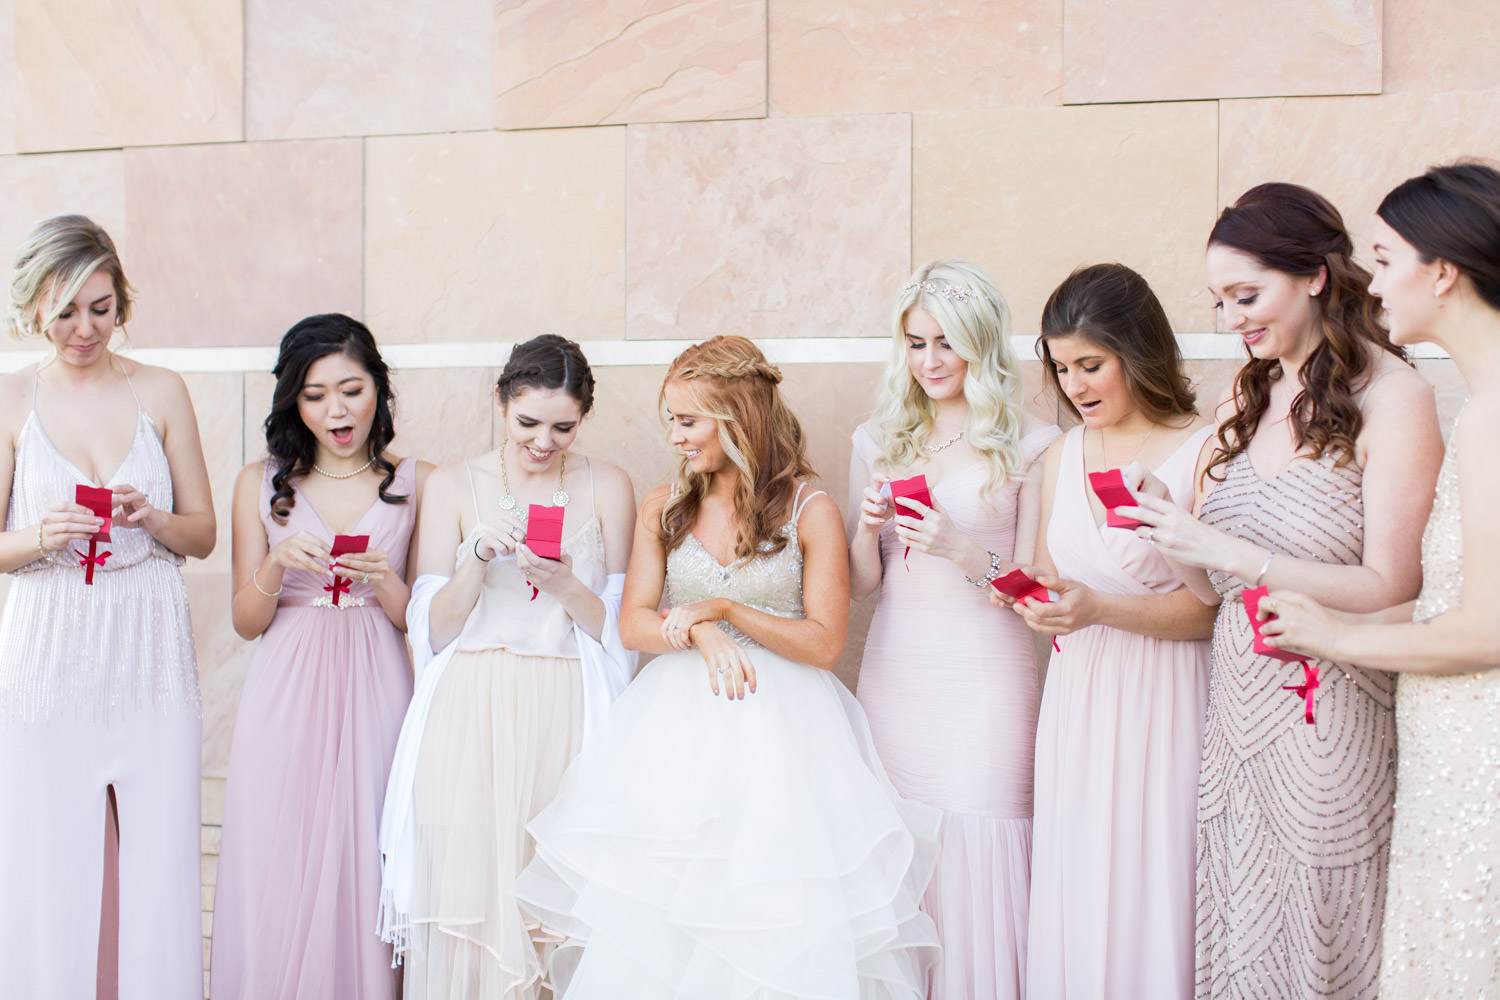 Bride gifting her bridesmaids Rose gold bridesmaids bracelets, Cavin Elizabeth Photography